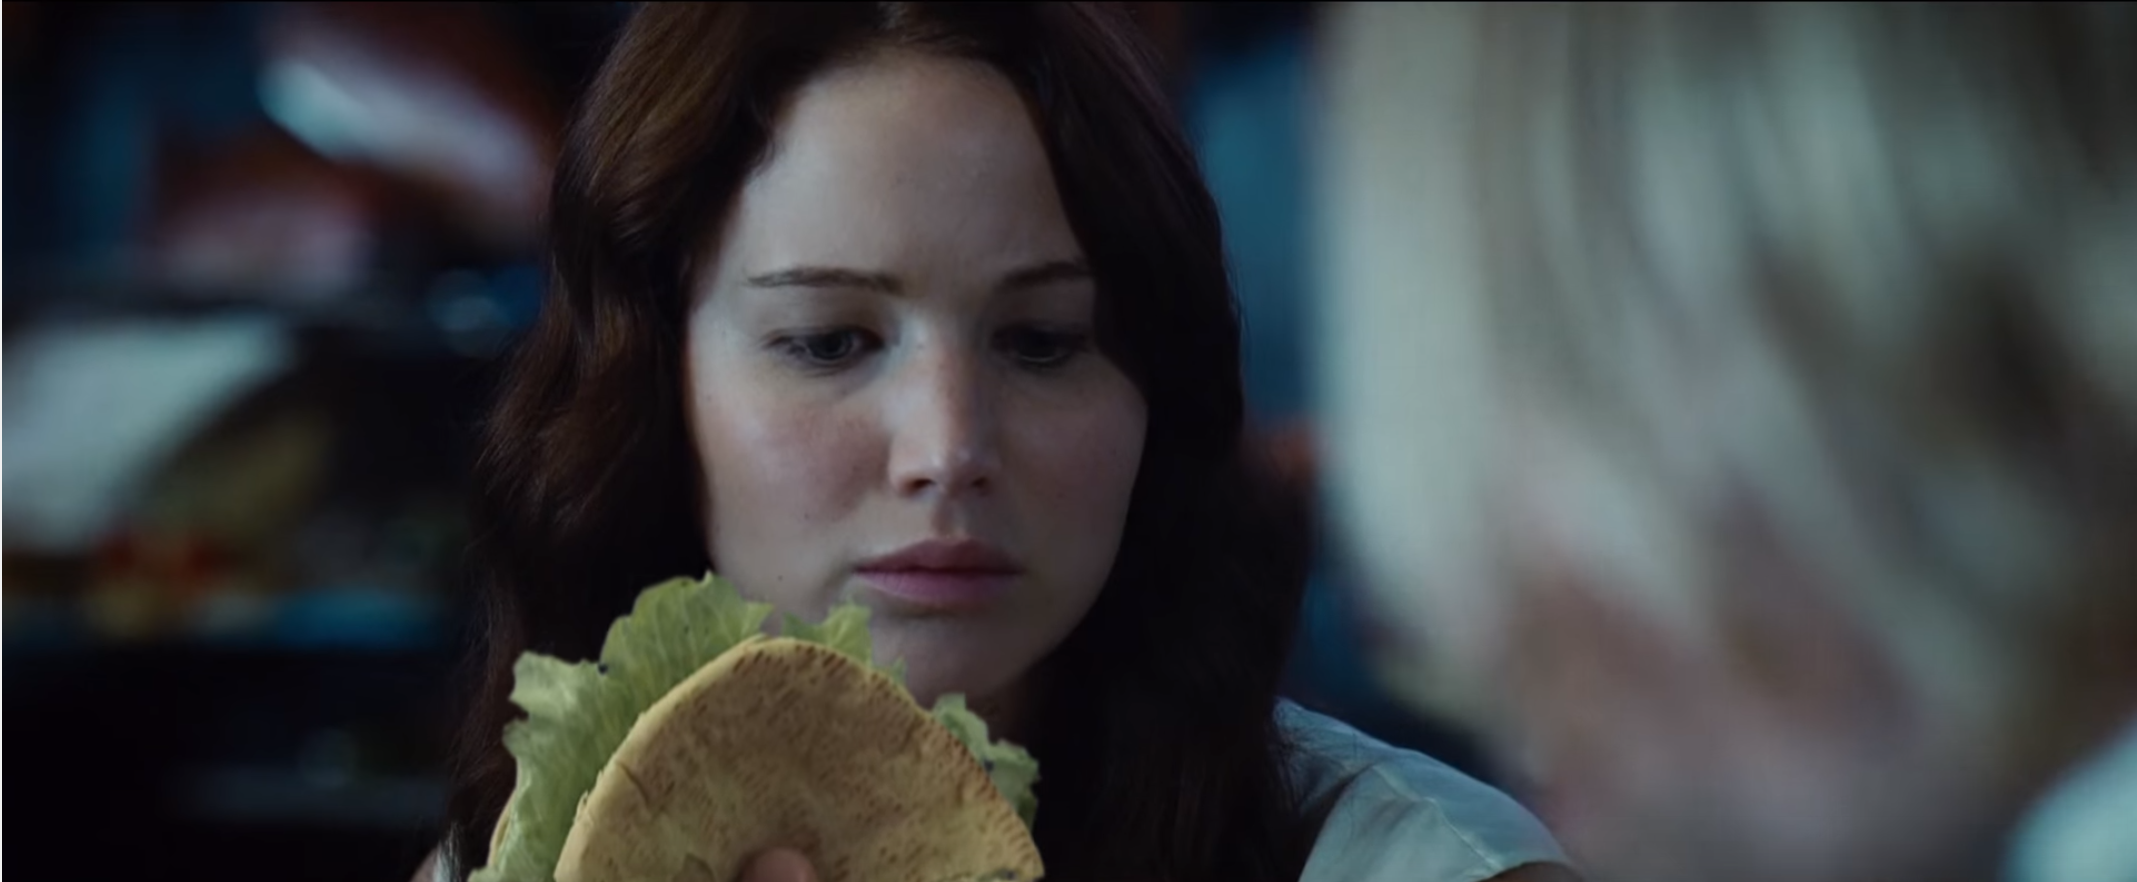 Latest Hunger Games News: Katniss sure loves Pita